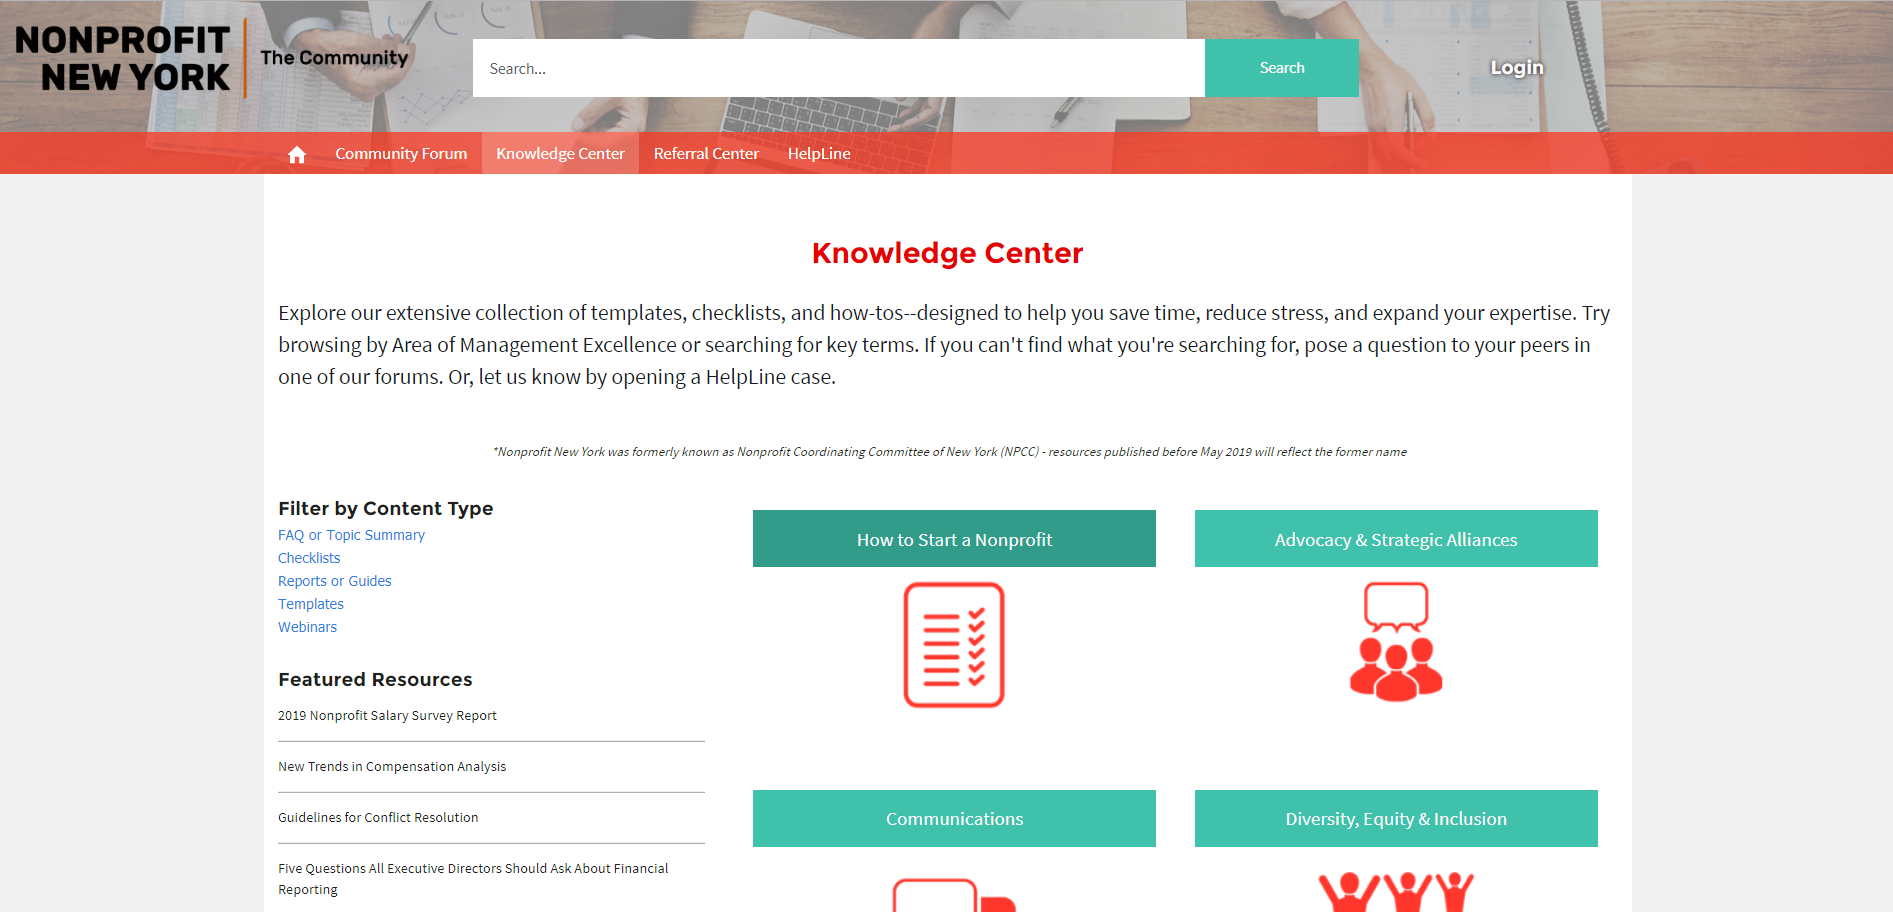 The Knowledge Center for the Salesforce Community